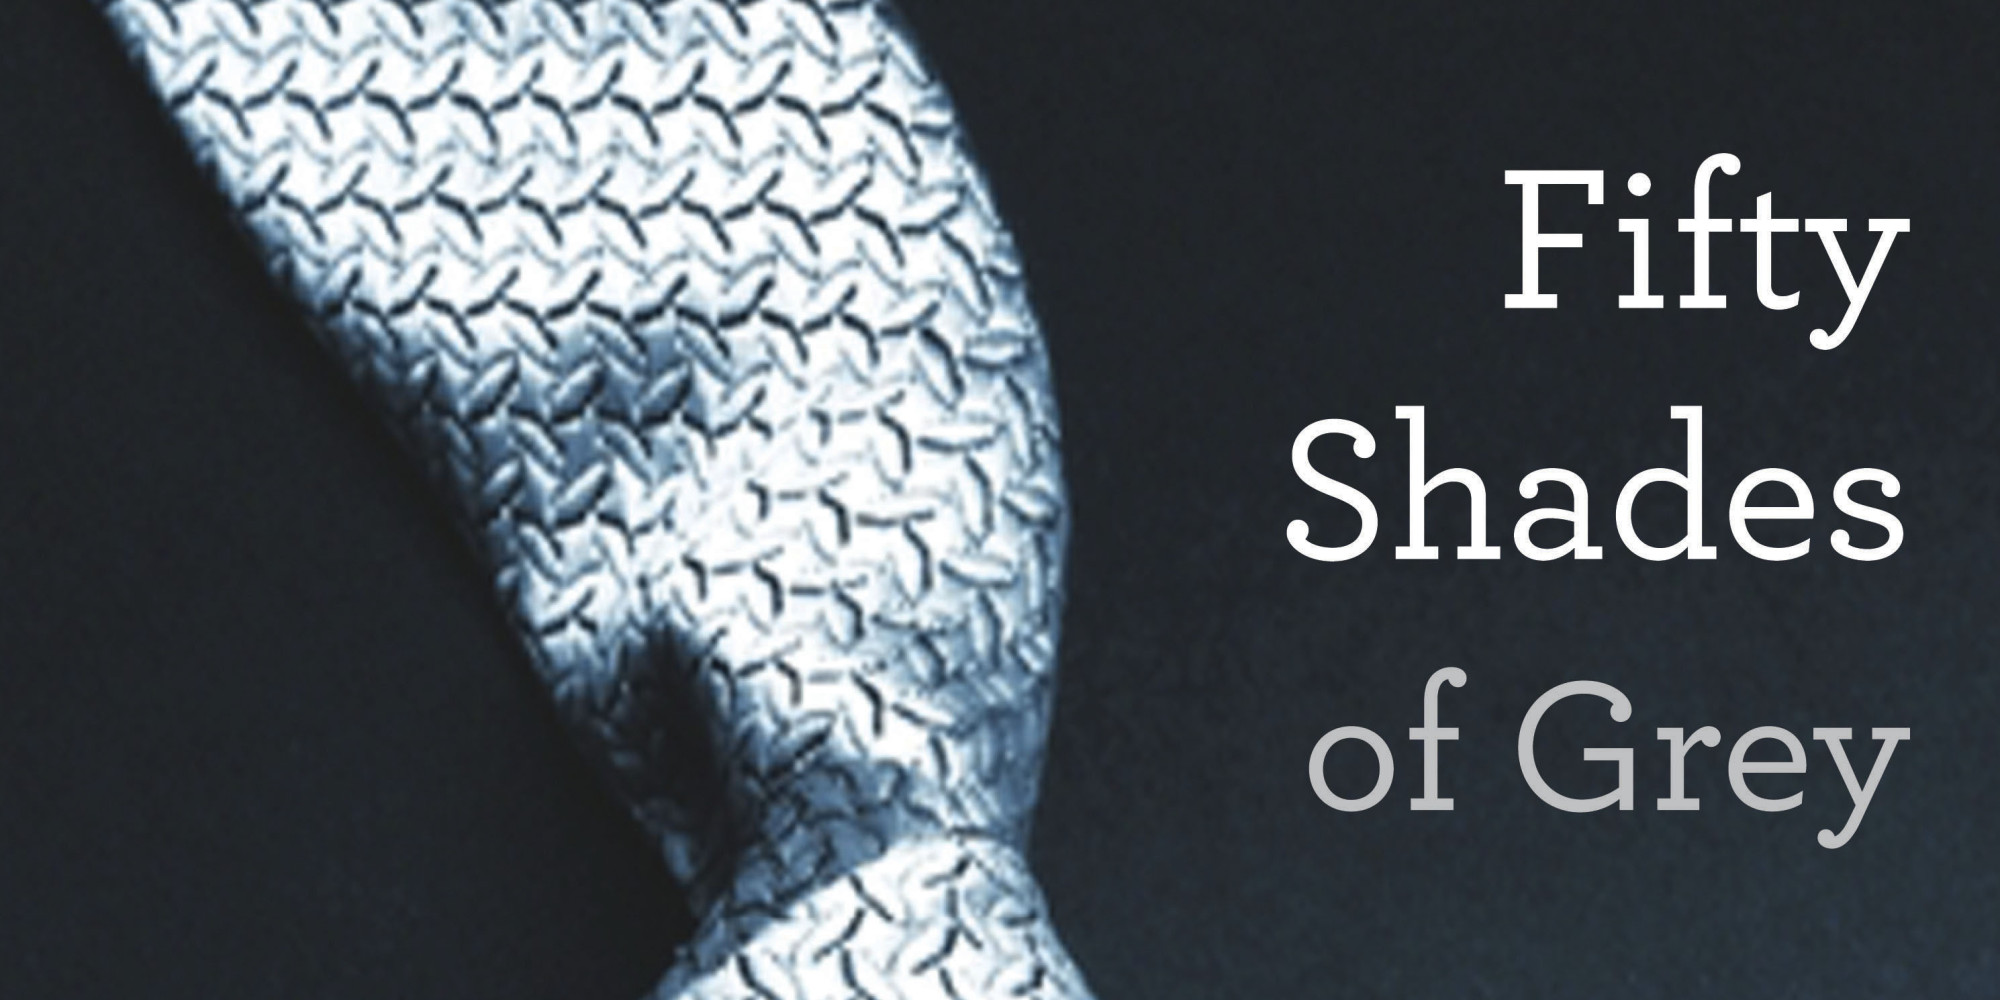 Quotes From 50 Shades Of Grey The Day I Defended Fifty Shades Of Grey   Huffpost